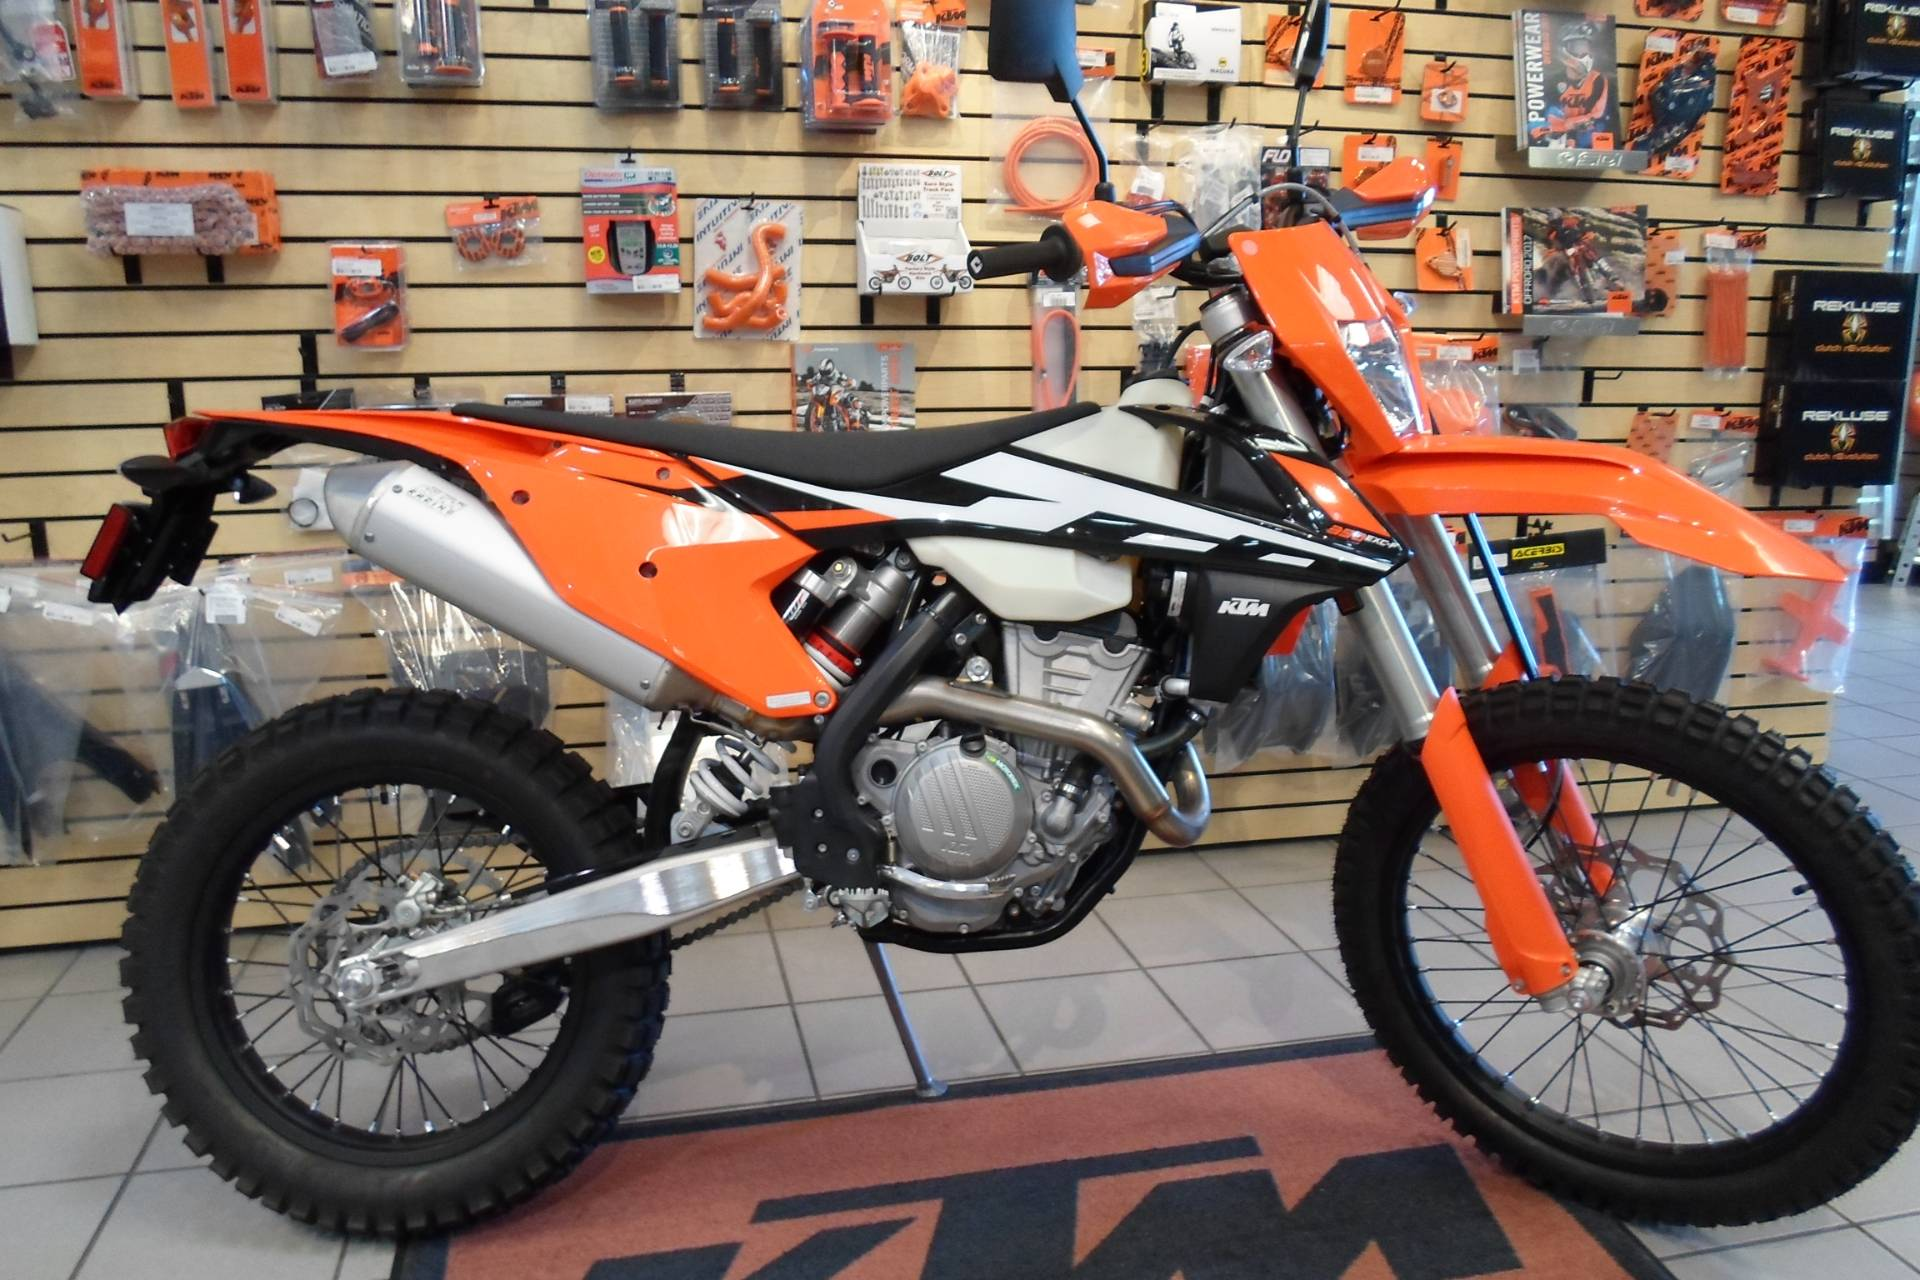 new 2017 ktm 350 exc-f motorcycles in san marcos, ca